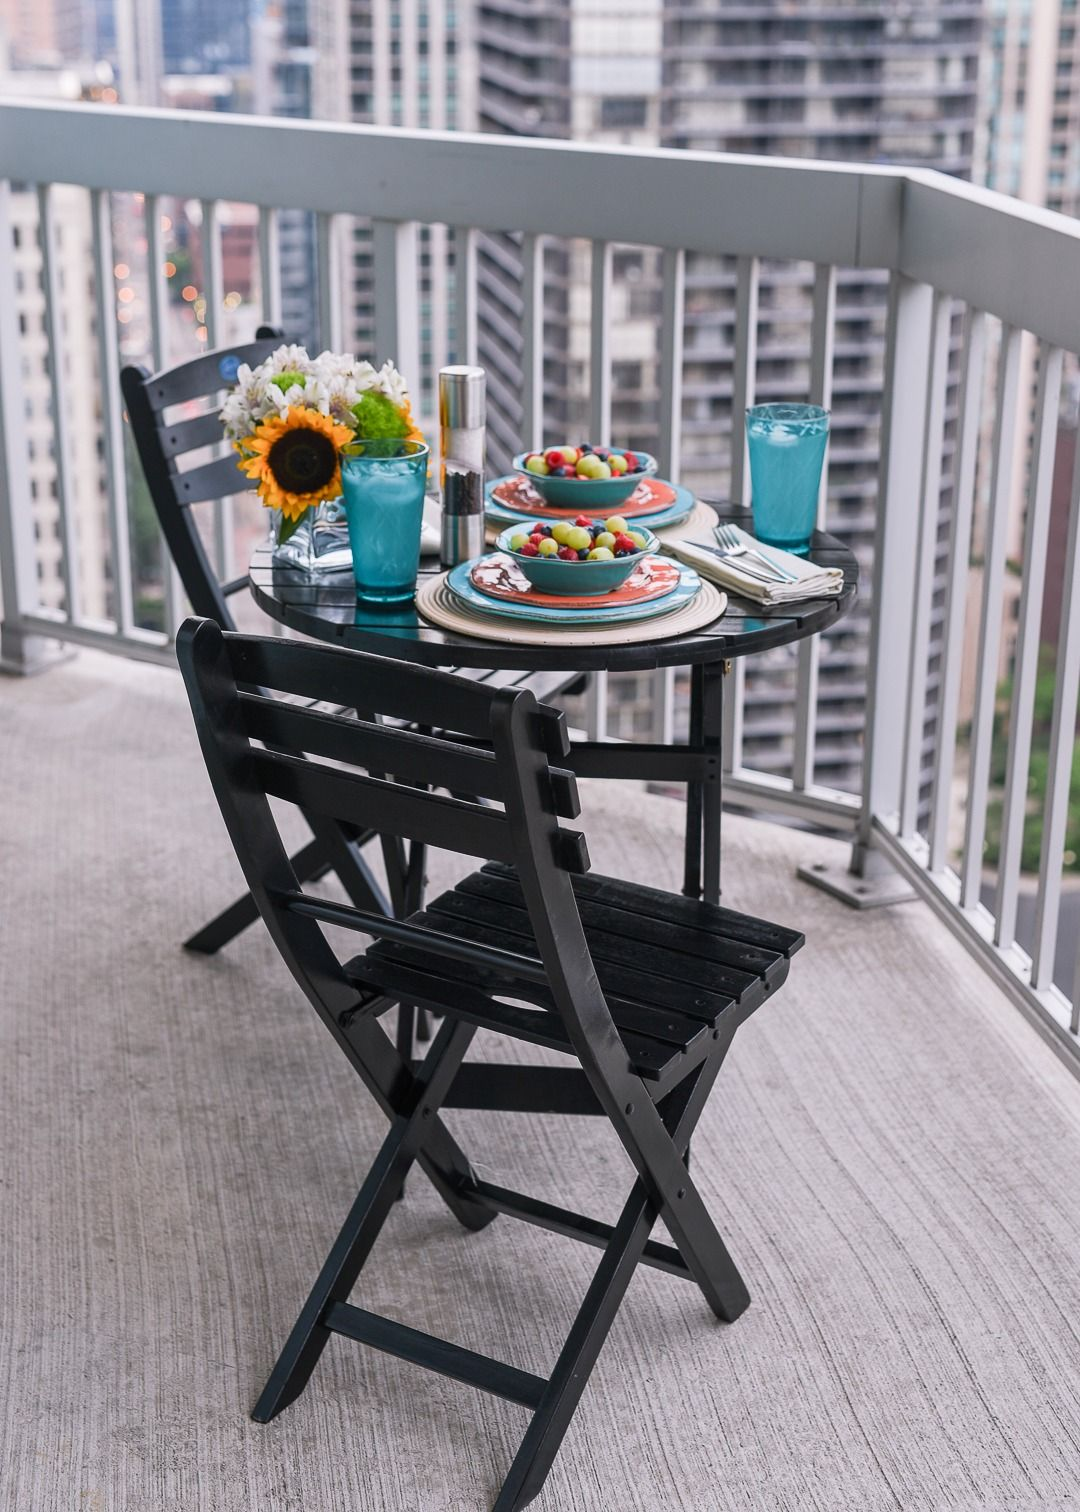 Affordable Outdoor Entertaining With Bed Bath Beyond Visions Of Vogue Bed Bath And Beyond Outdoor Furniture Sets Outdoor Entertaining